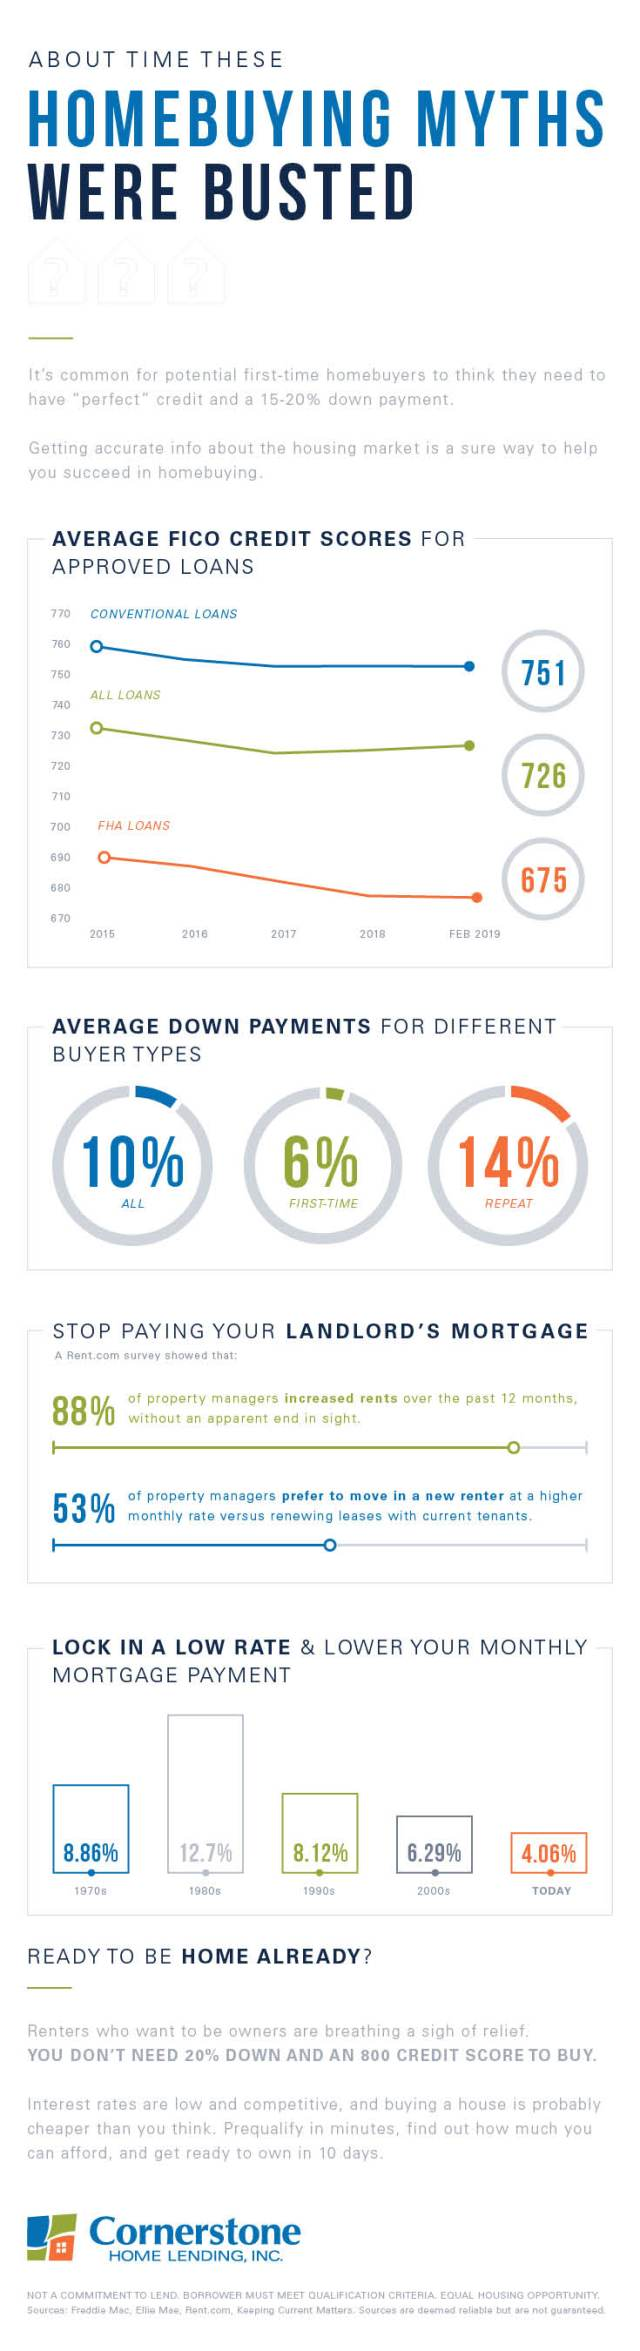 Big myths BUSTED: Avg  first time home buyer down payment is